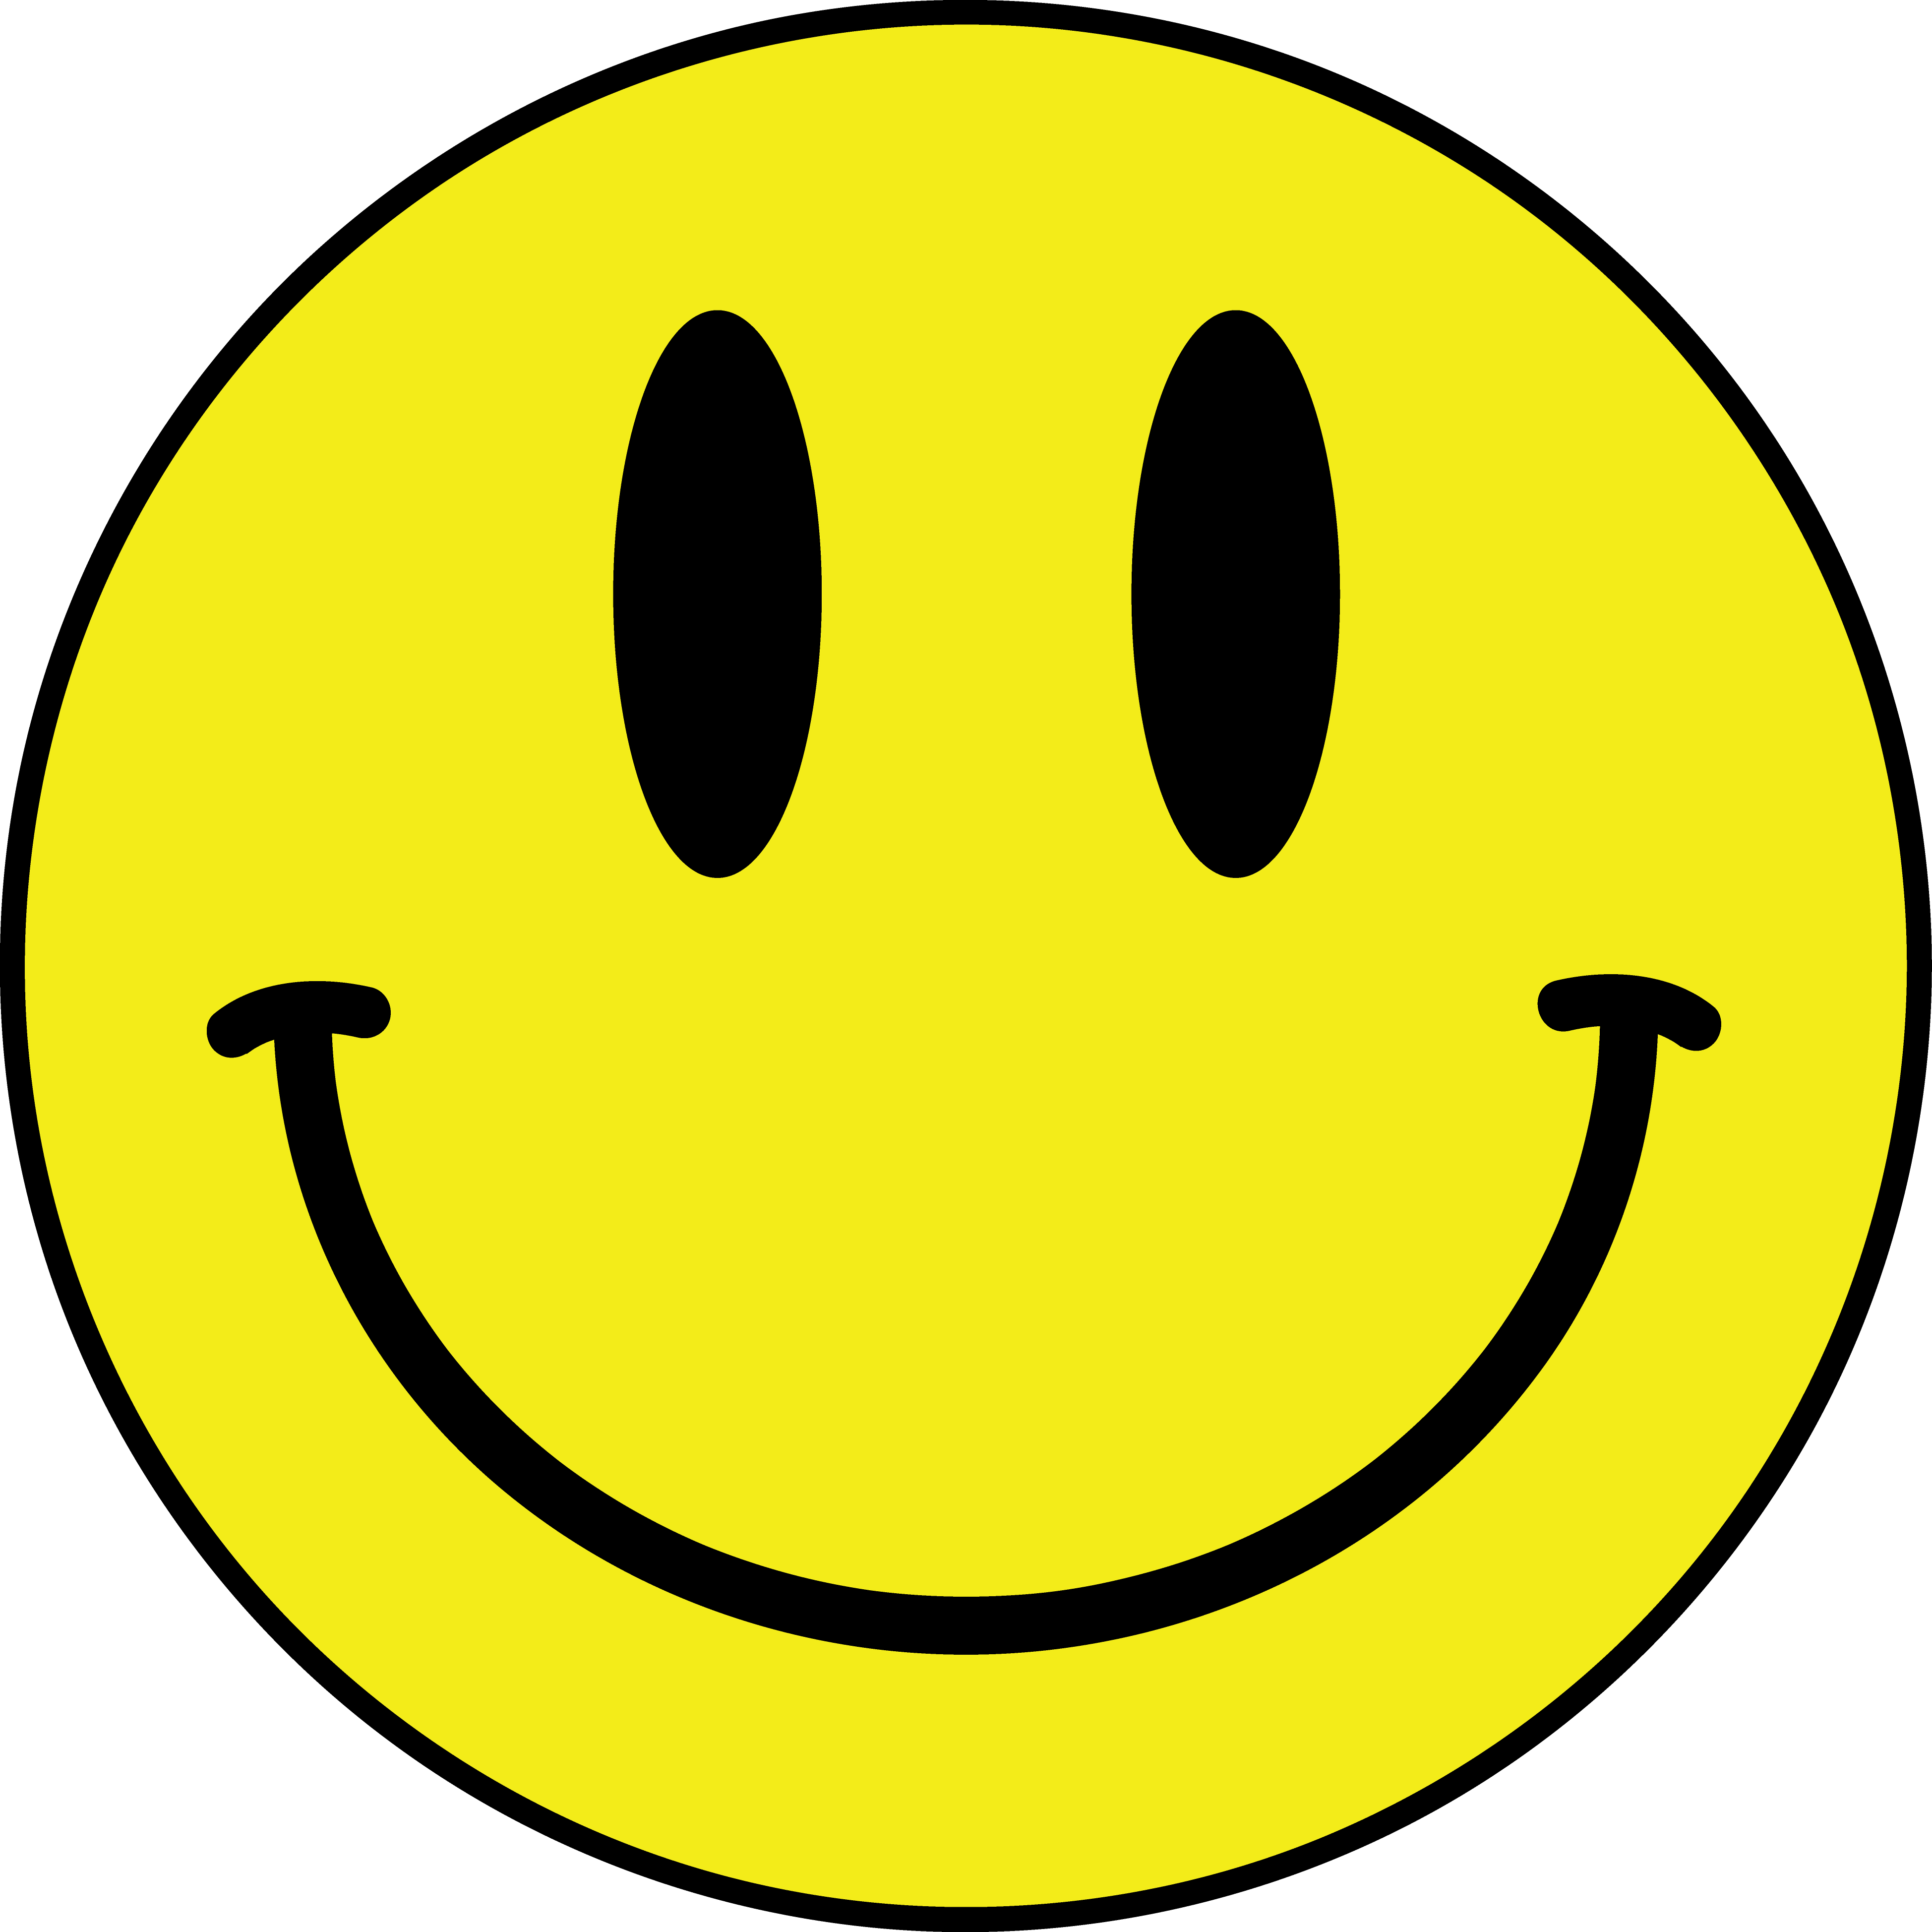 Happy emoticon png. Smiley images free download